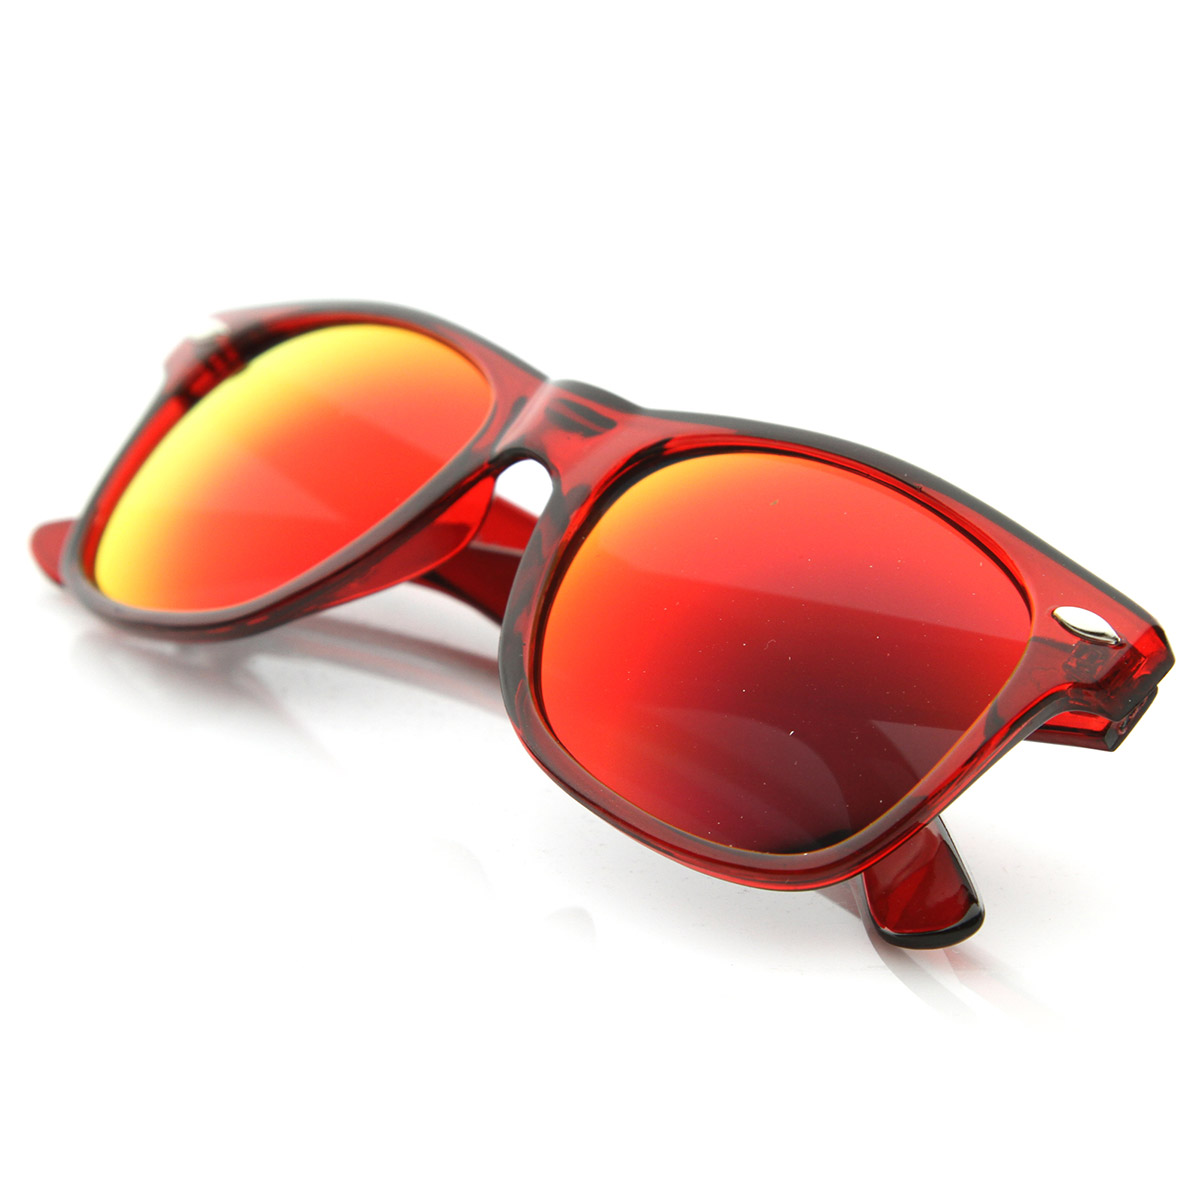 Classic-Retro-Fashion-Translucent-See-Through-Colorful-Horn-Rimmed-Sunglasses